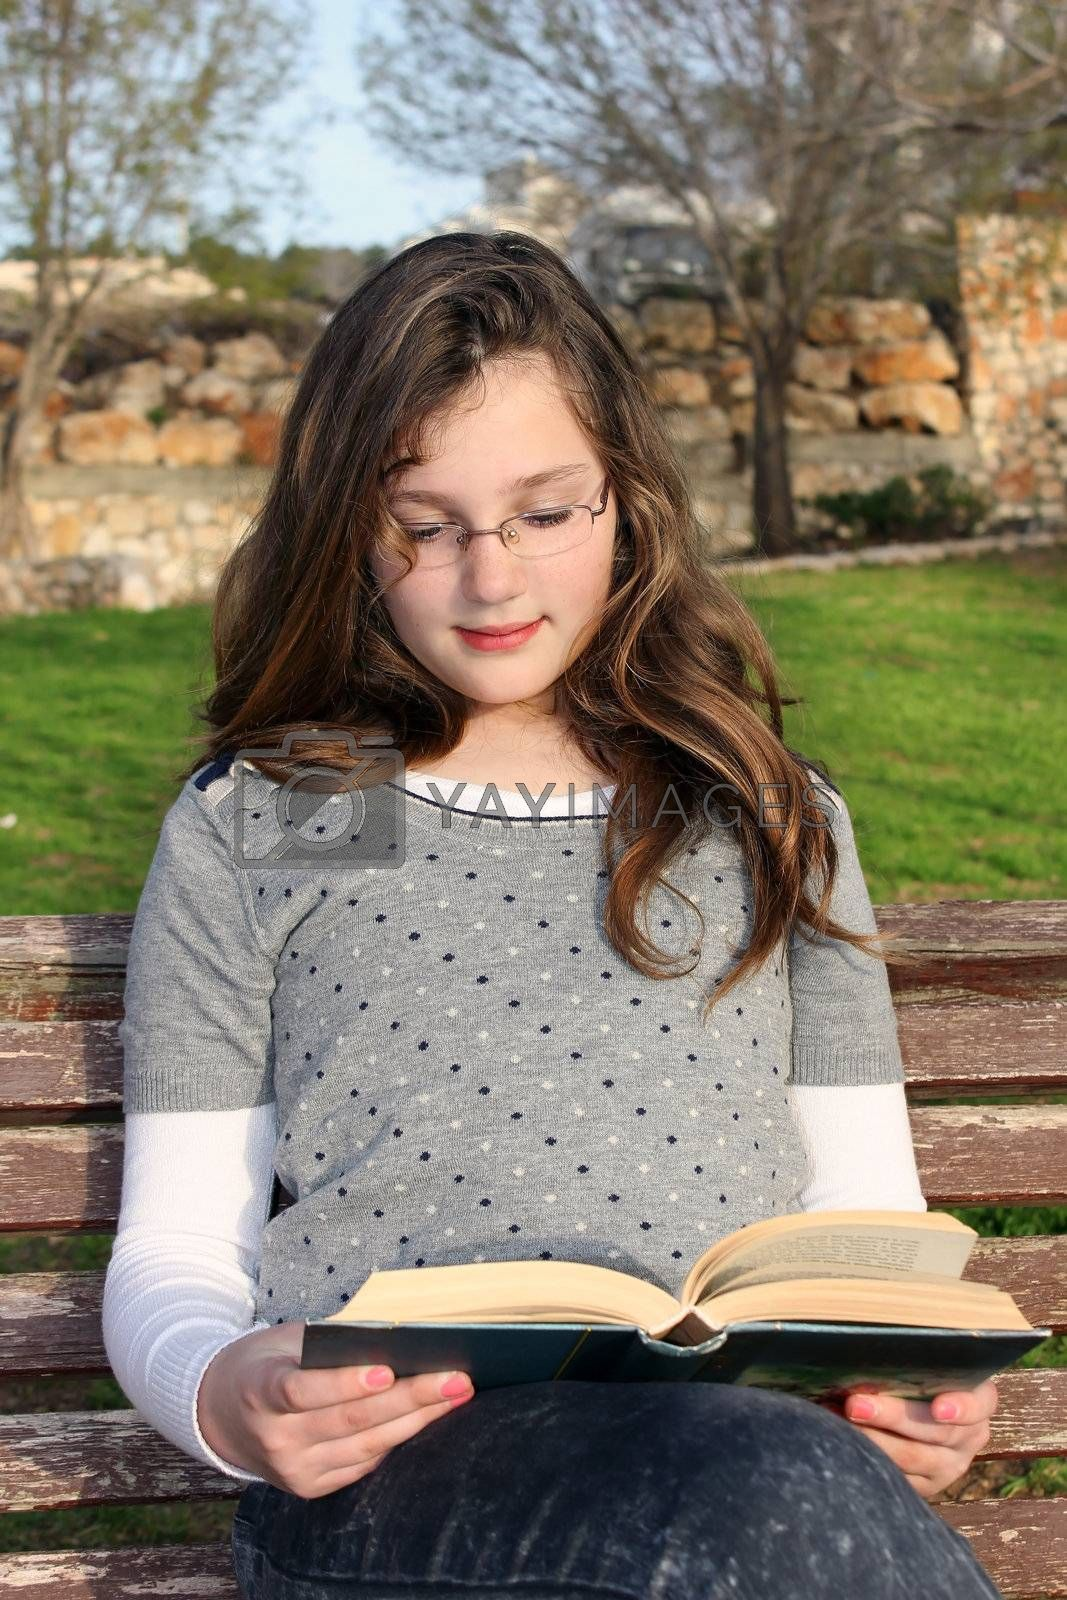 young girl with glasses, sitting in the park and reading a book